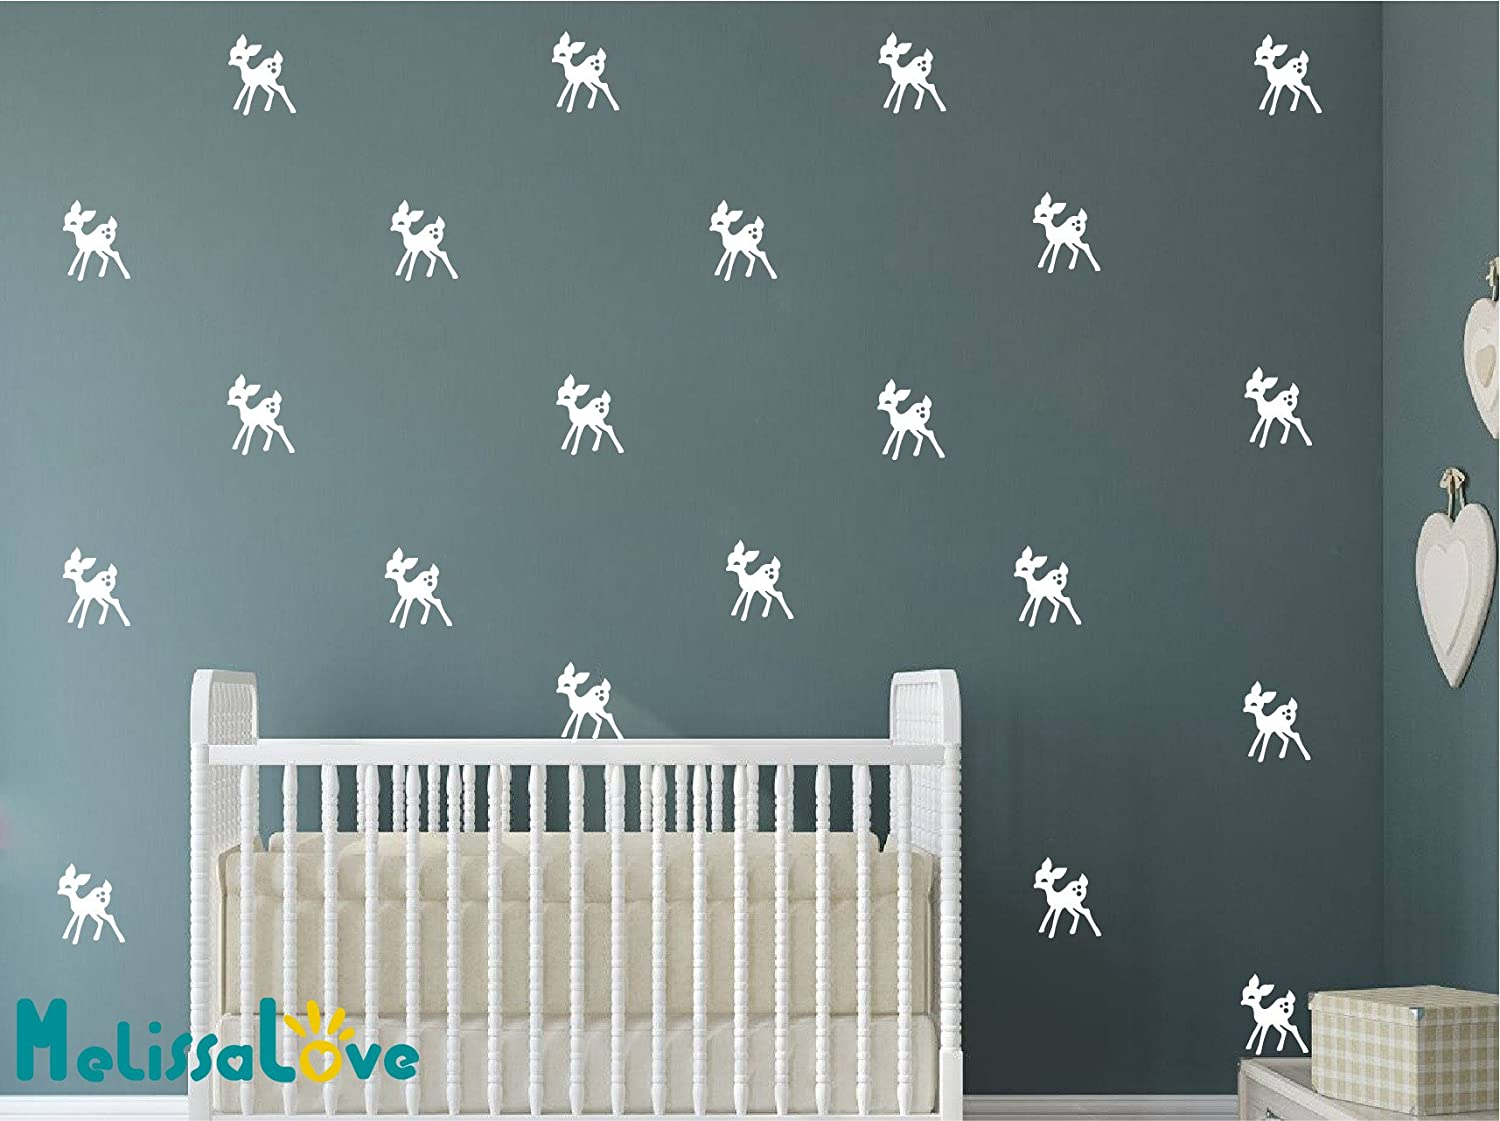 Melissalove 48pcs Pink Deer wall decor stickers 10X8cm DIY animals wall decals for kids room baby nurdery wallpaper D475 Light Pink